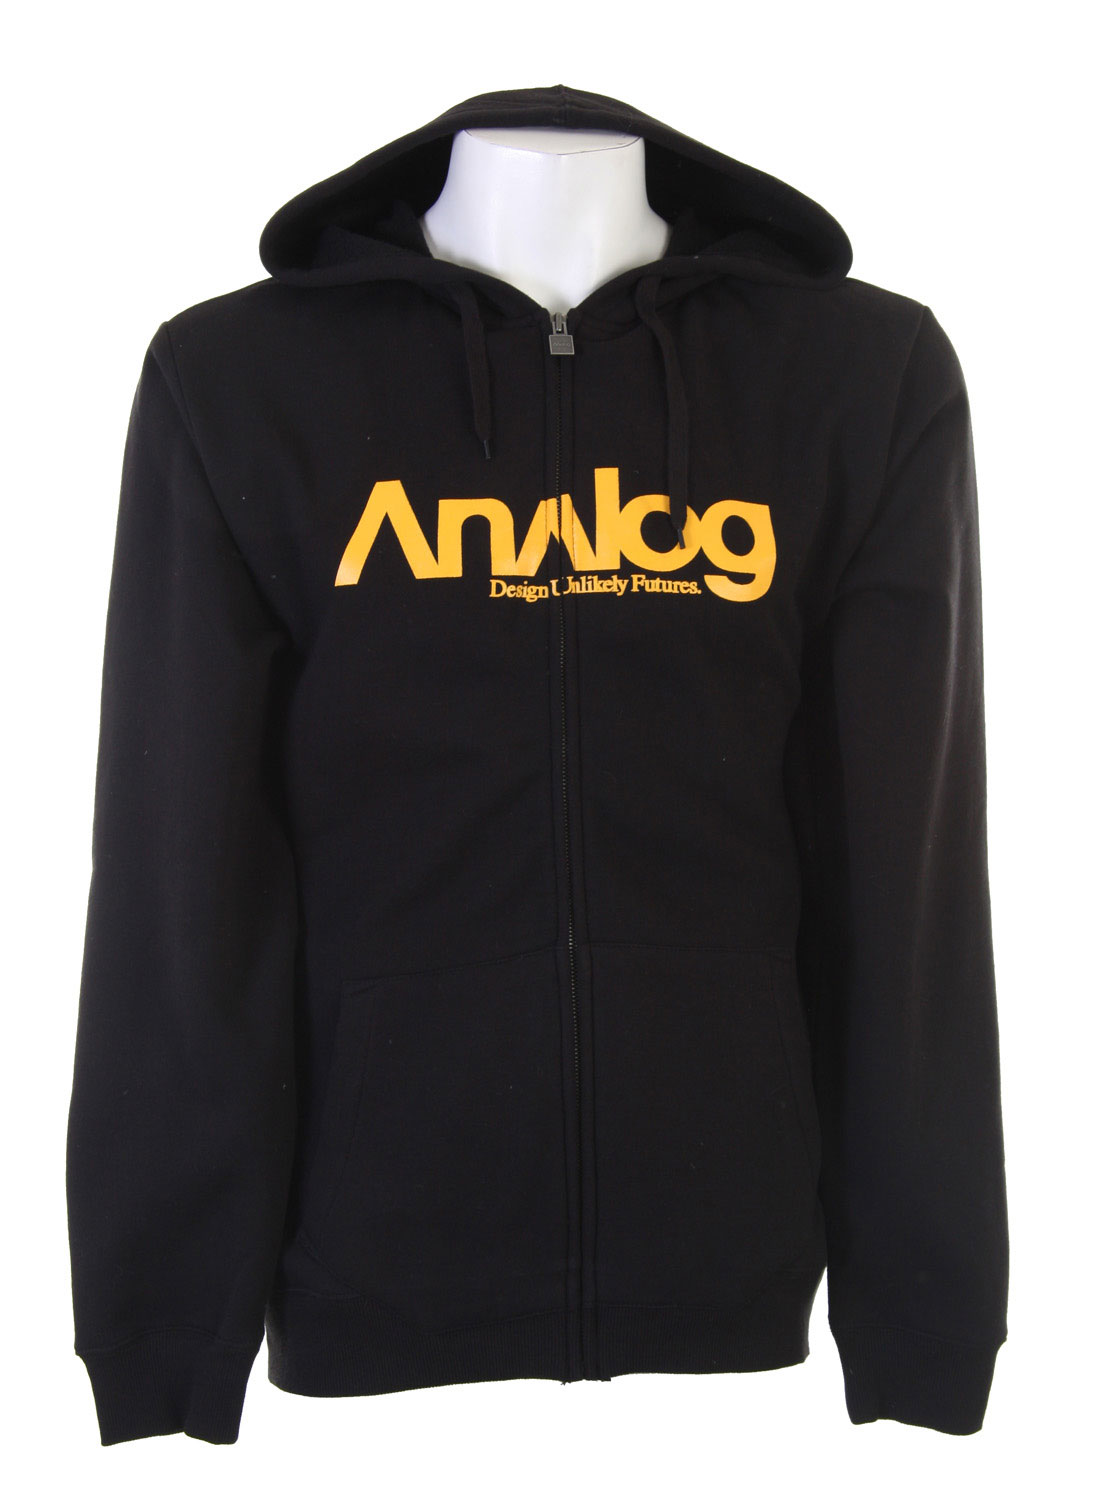 "Ski This particular Analog hoodie is an absolute must-have from a very respectable name in the ski and snowboard clothing community. The hoodie is purposely composed of only 80% cotton in order to regulate the proper proportions of the apparel. The trusted logo of ""Analog"" is printed straight across the front of the hoodie, bisected by the zipper, in bright yellow font,an effort to accentuate the contrast between the hoodie and the text so the brand of the hoodie is even more visible. Most importantly, the fleecy warmth of the hoodie is enough to keep you warm on the hills or in the lodge.Key Features of the Analog Enterprise Fullzip Hoodie: 80% Cotton, 20% Polyester / 330Gm Fleece Screen Printed Logo On Chest Reg Fit - $31.95"